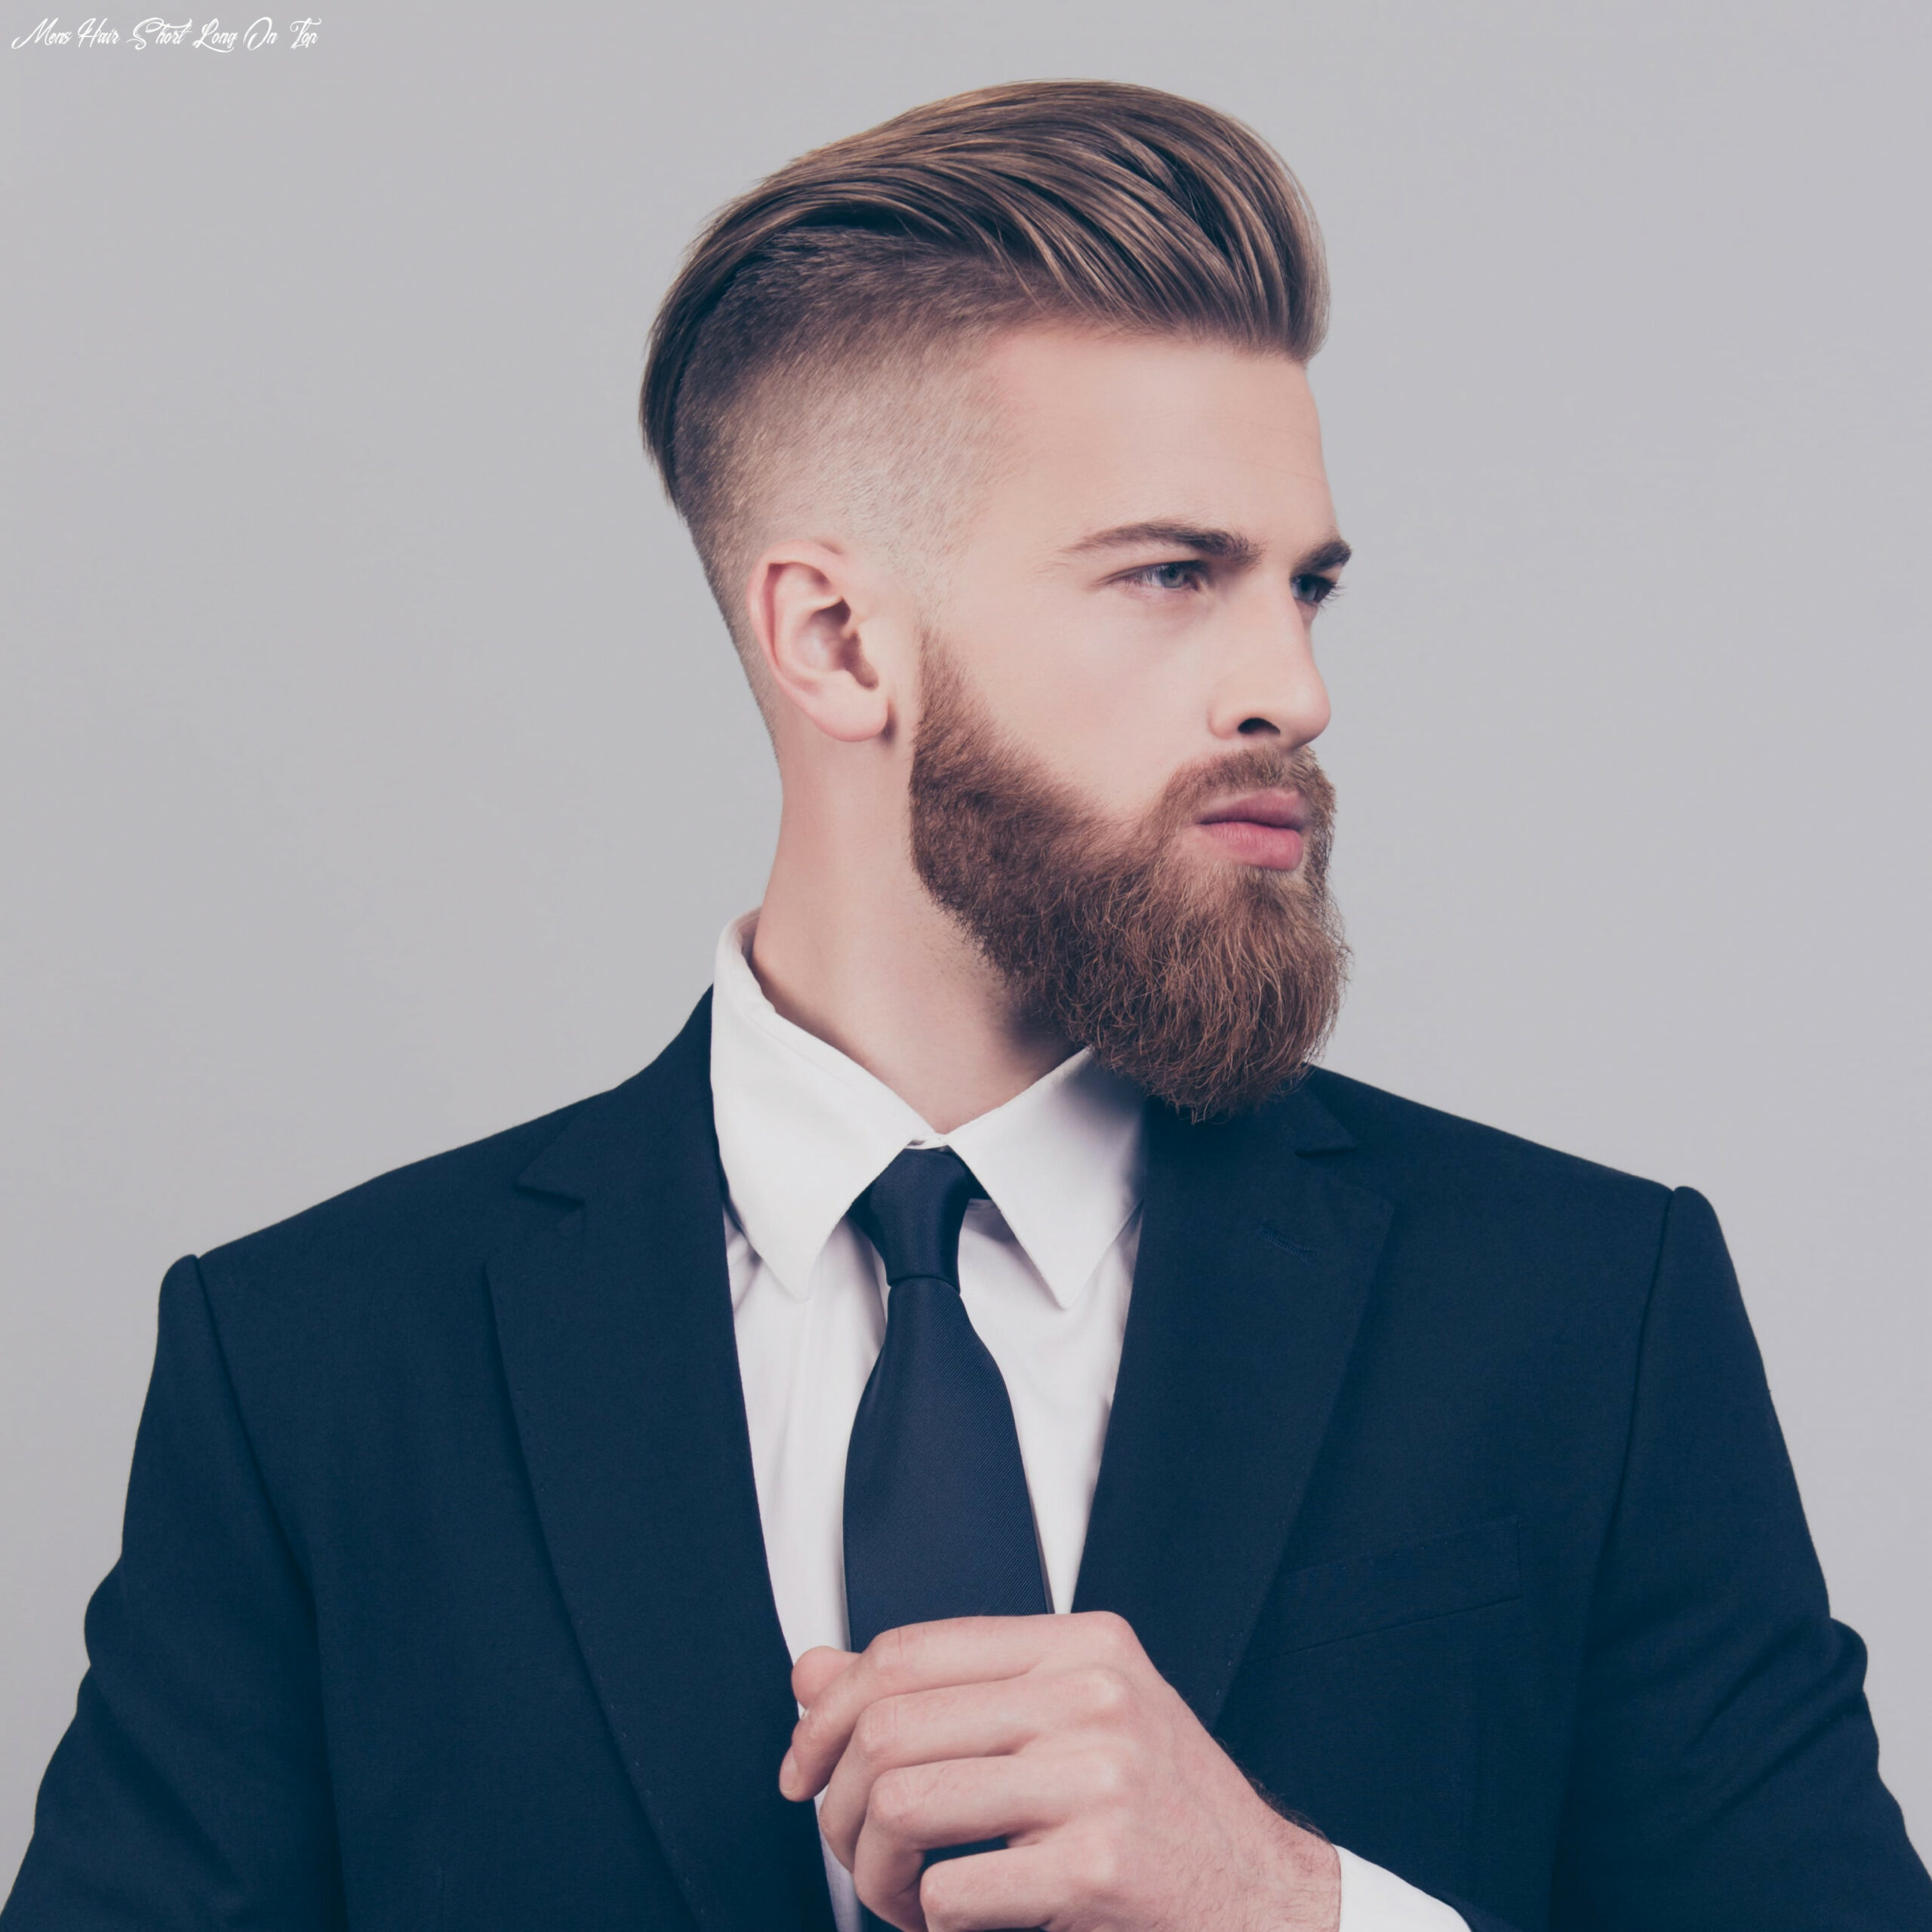 The best of both worlds: short sides & long top | haircut inspiration mens hair short long on top